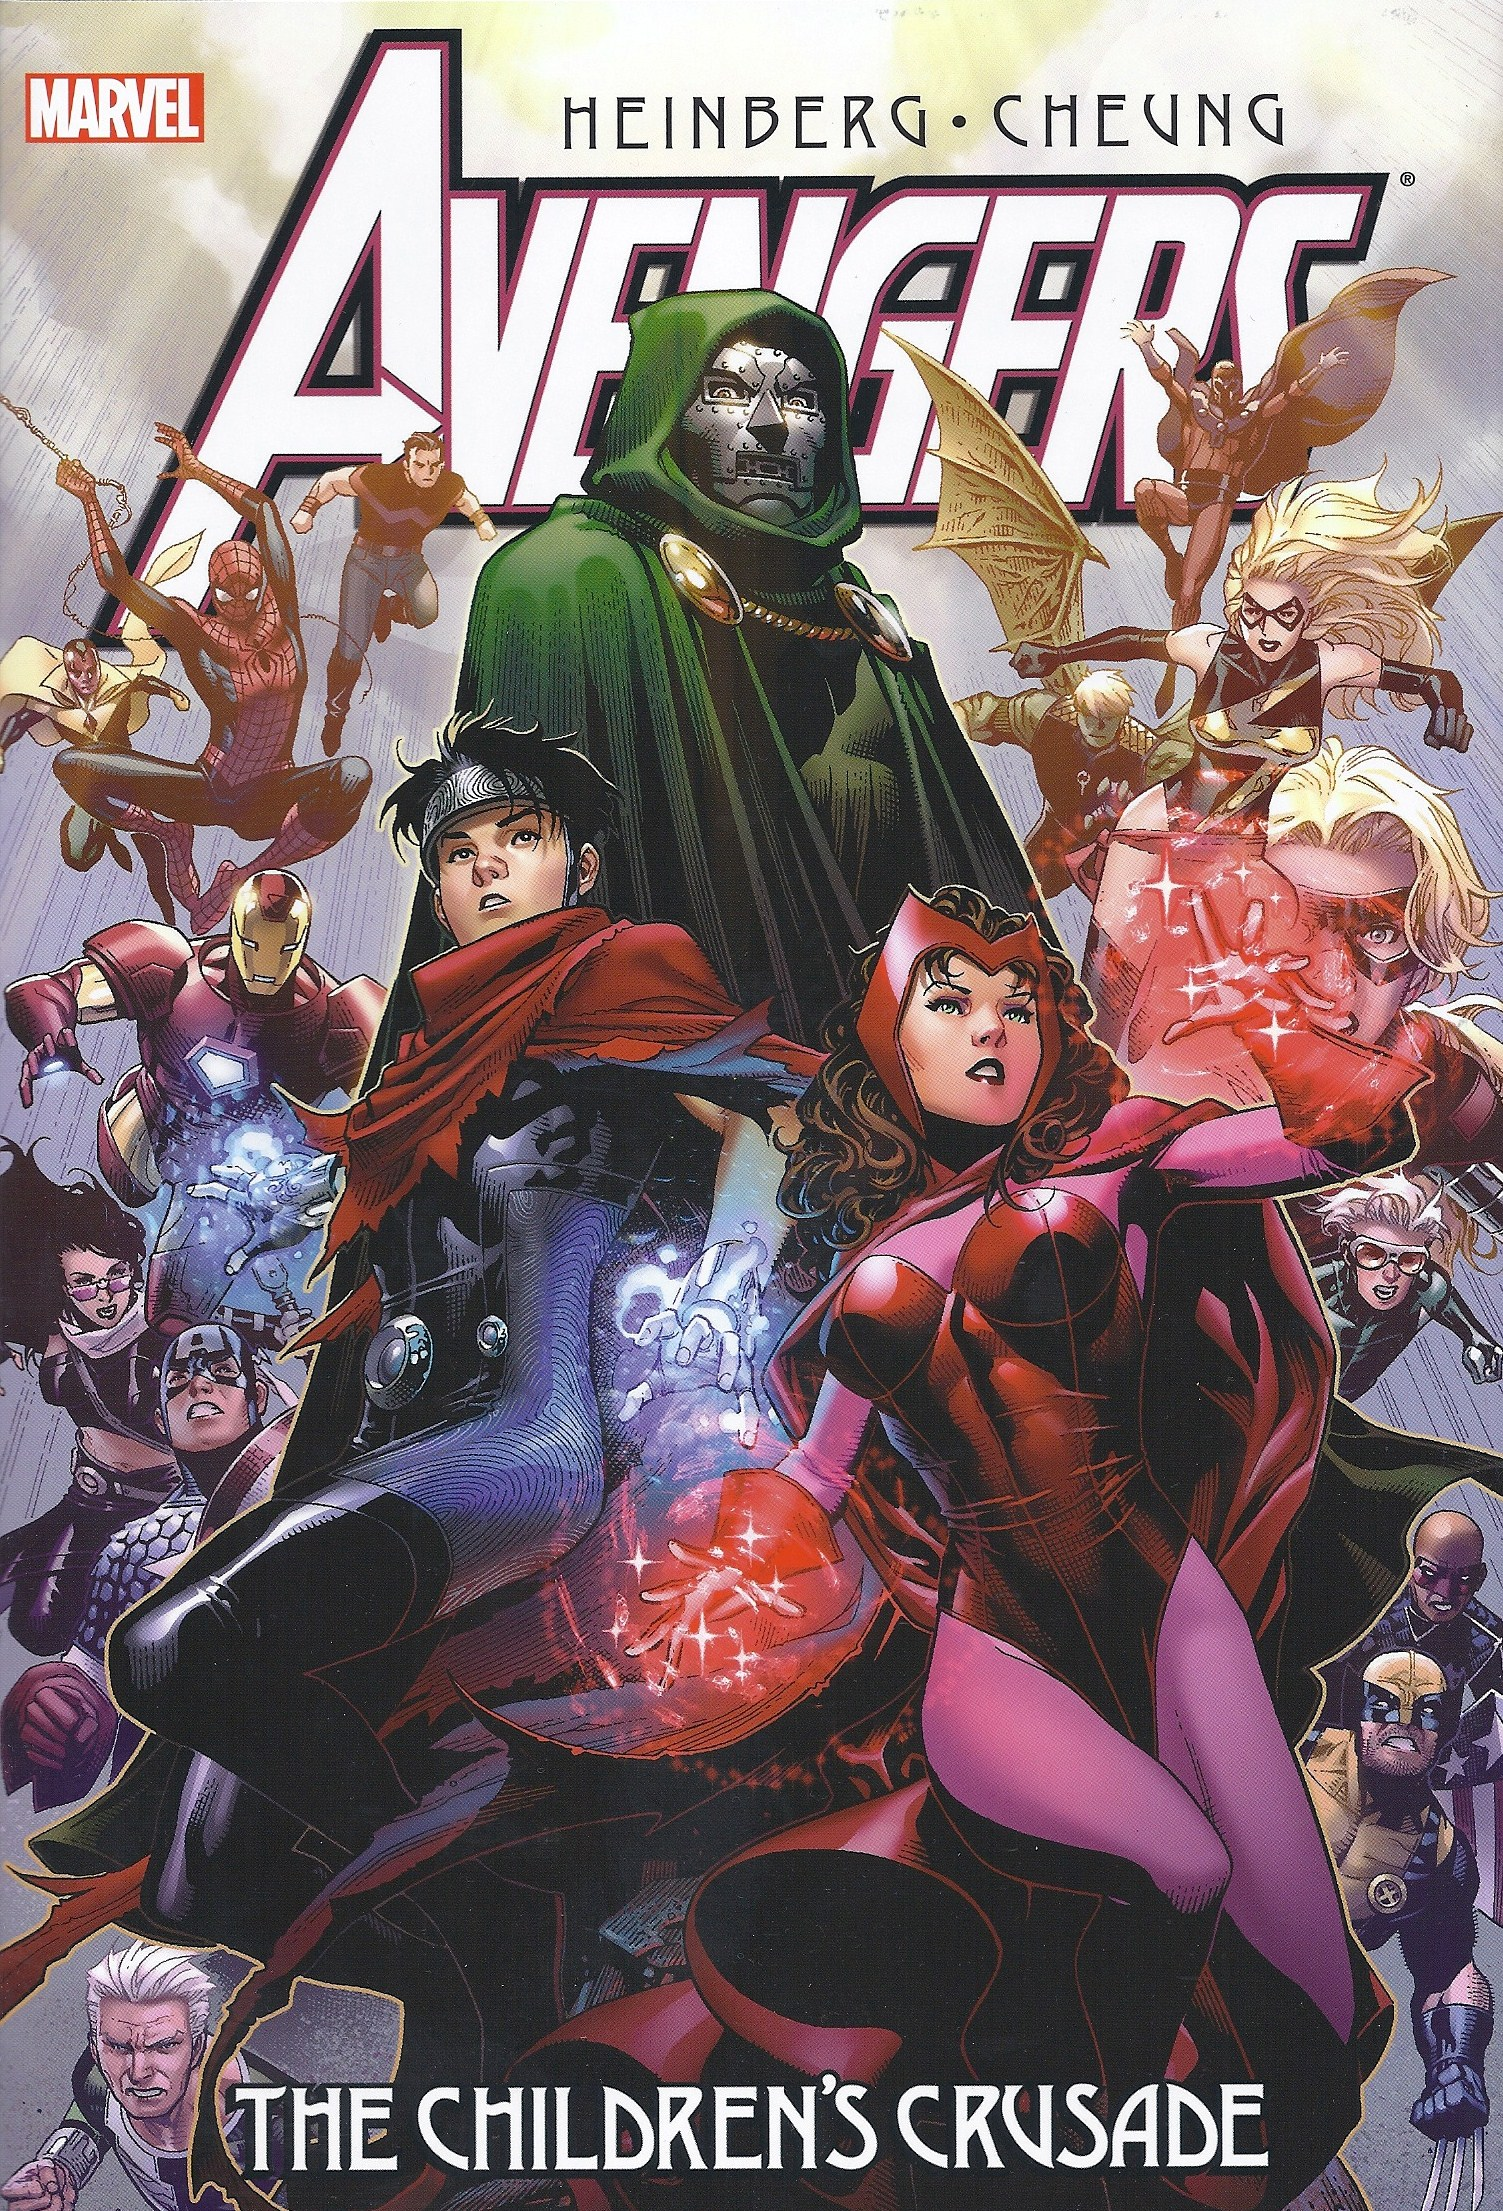 10. Young Avengers: The Children's Crusade